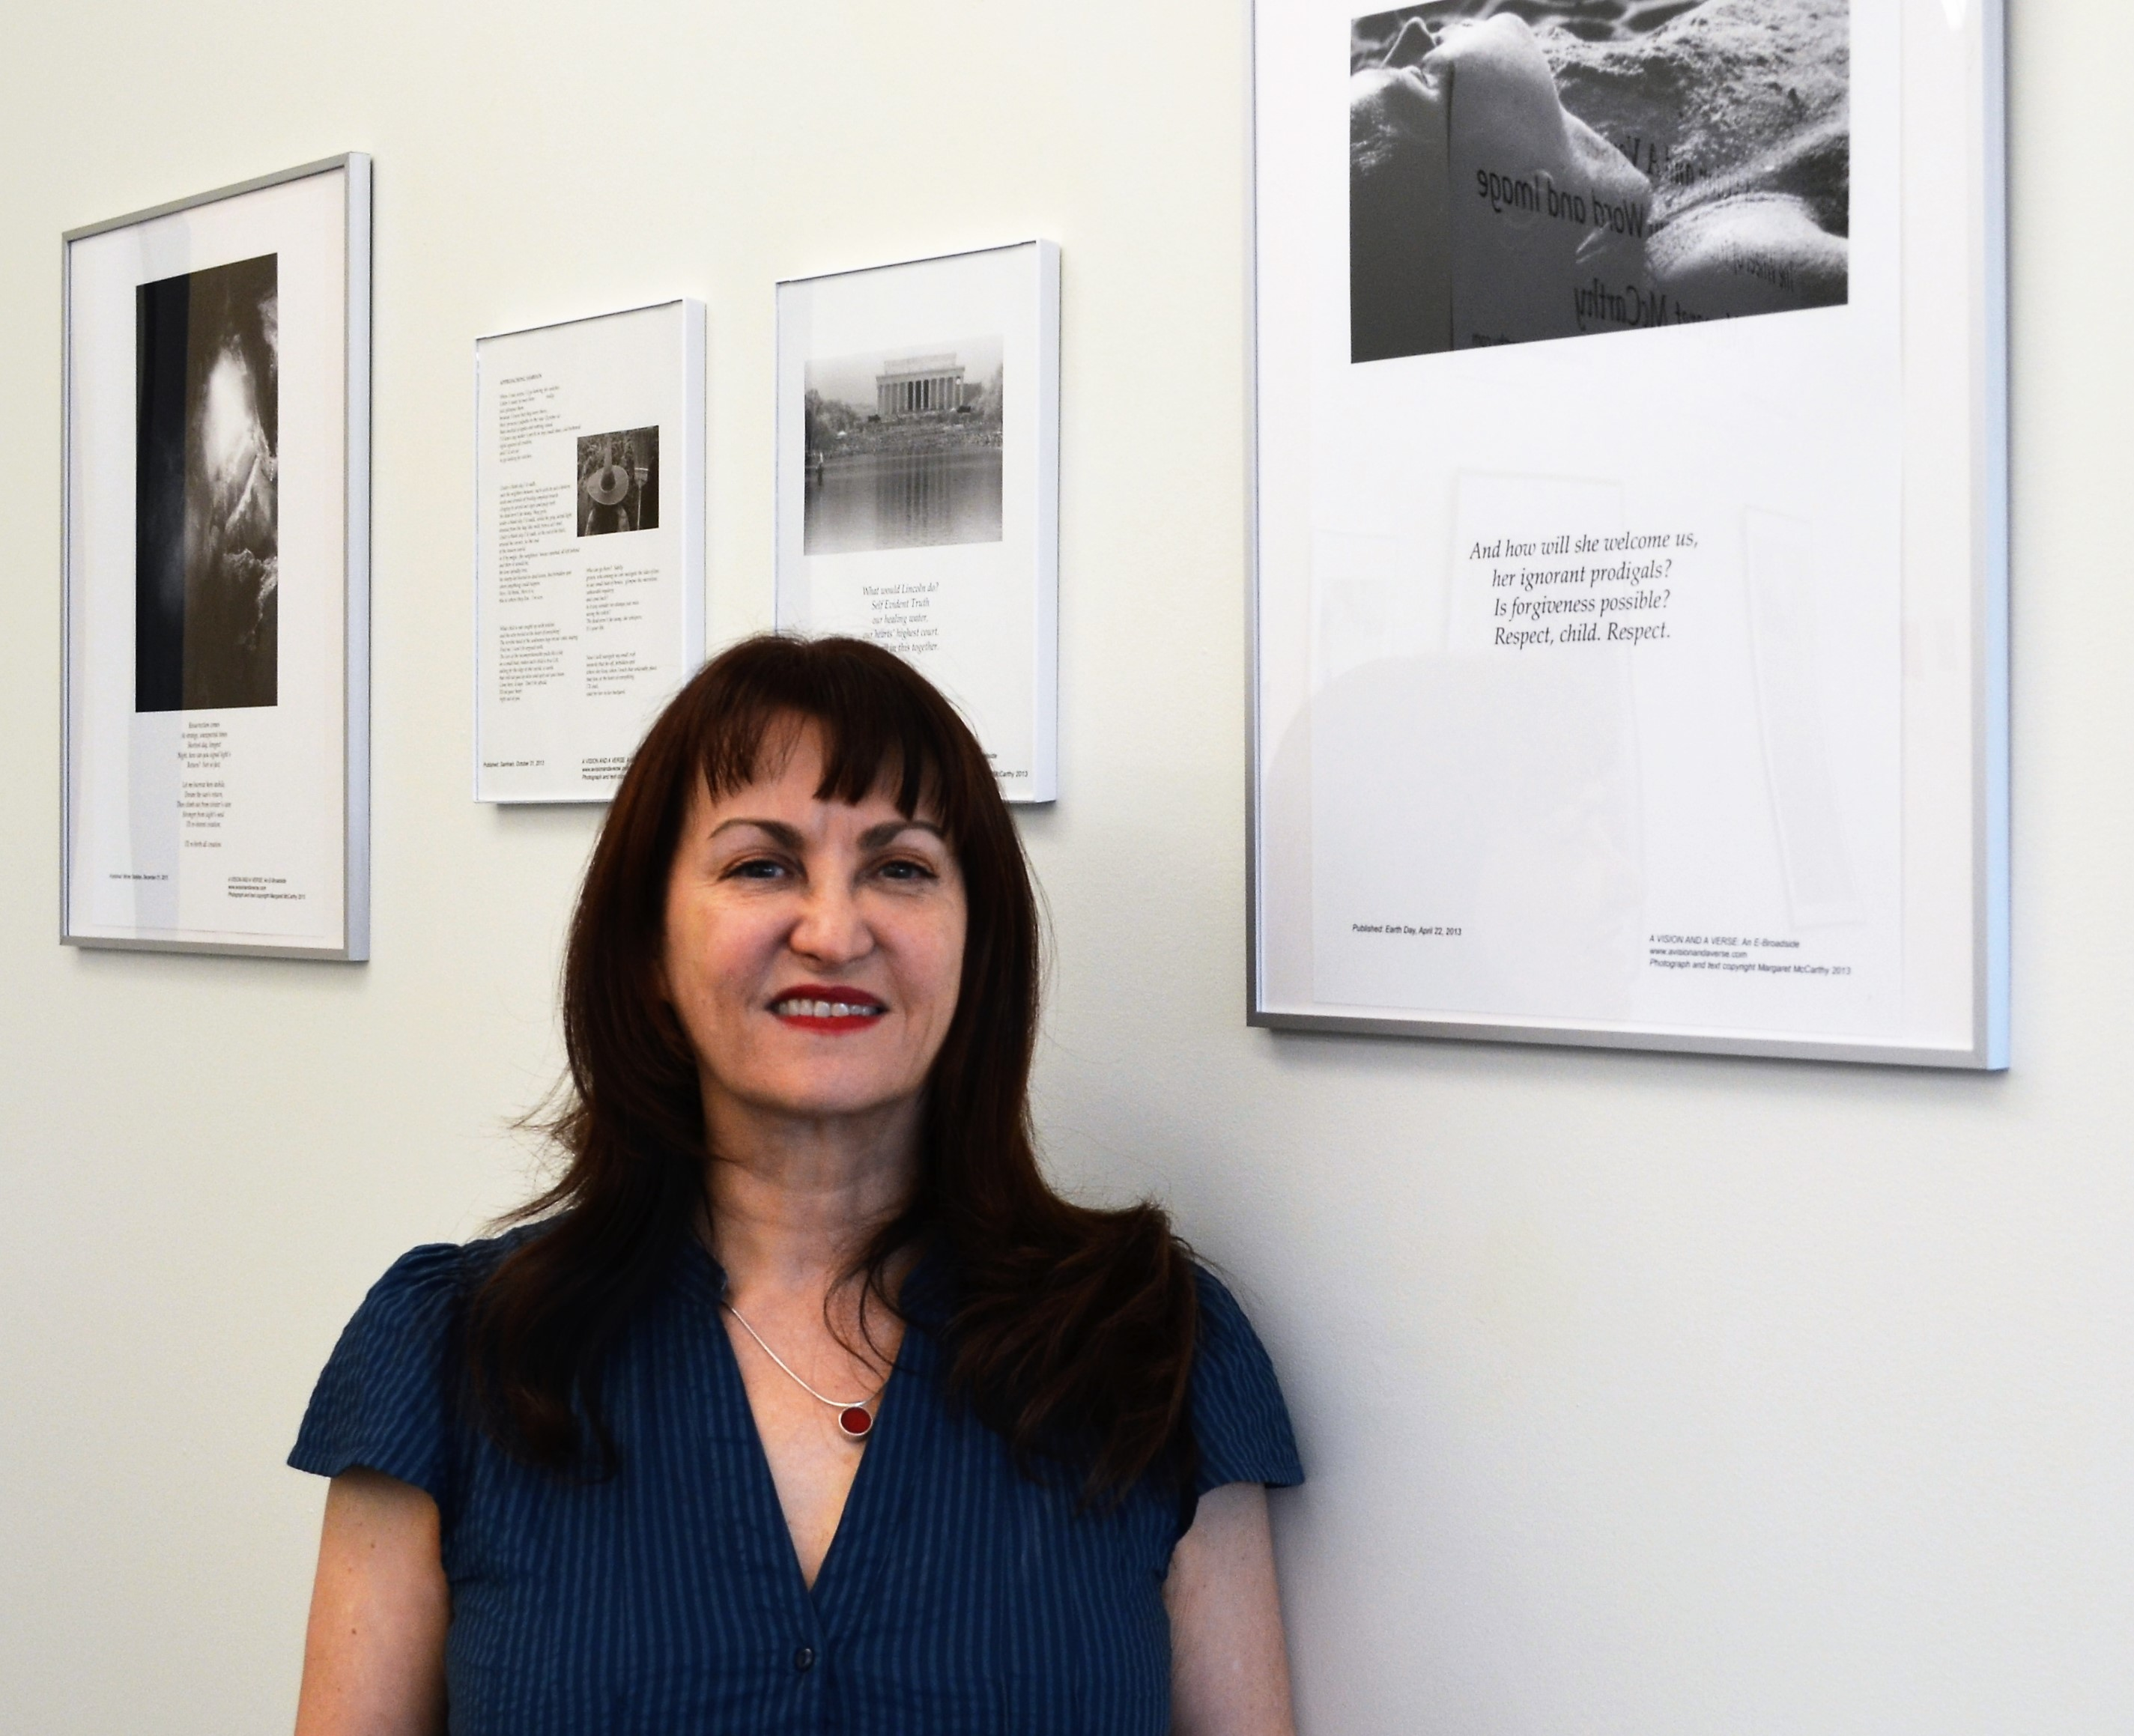 Myth and Mystery Displayed in Poetry and Photographs